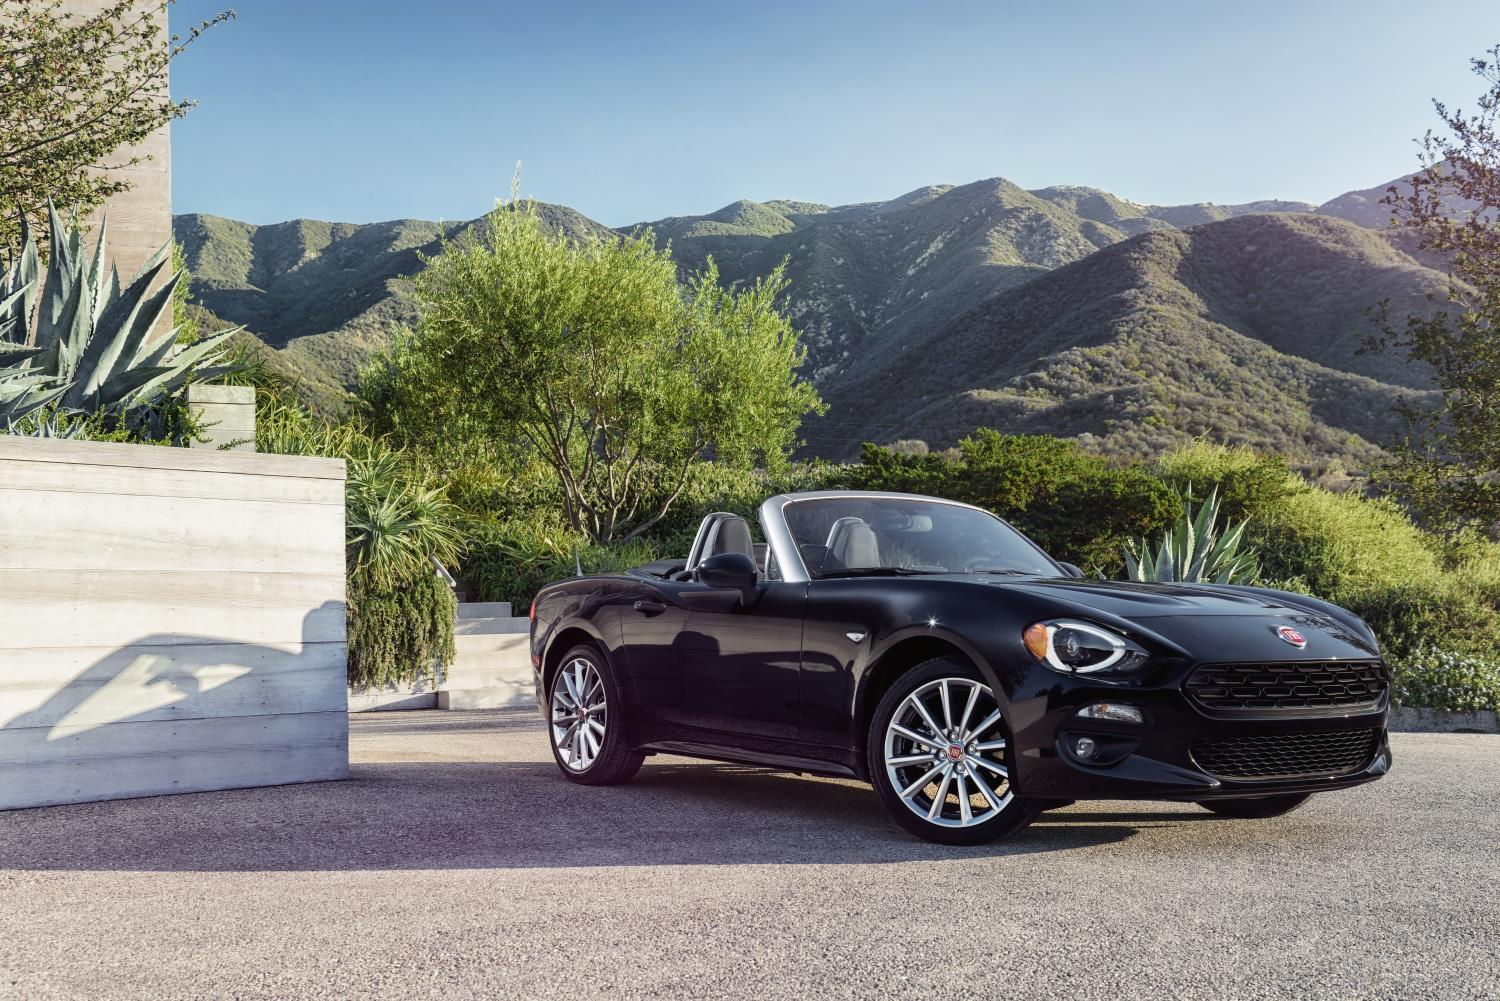 2017 fiat 124 spider us pricing announced it 39 s the most affordable of its kind autoevolution. Black Bedroom Furniture Sets. Home Design Ideas